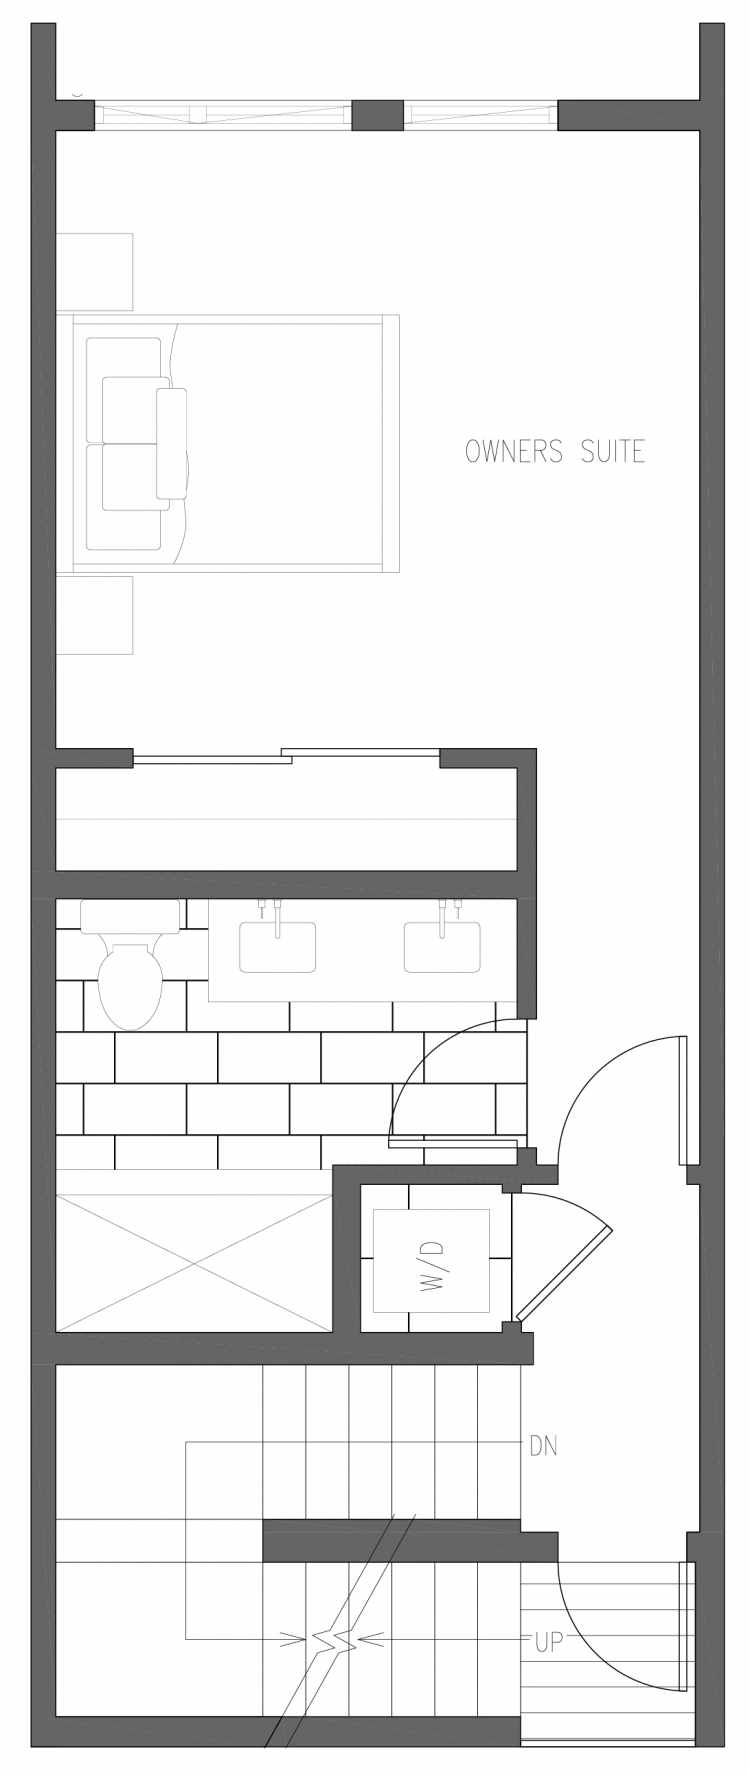 Third Floor Plan of 6415 14th Ave NW, One of the Oleana Townhomes in Ballard by Isola Homes